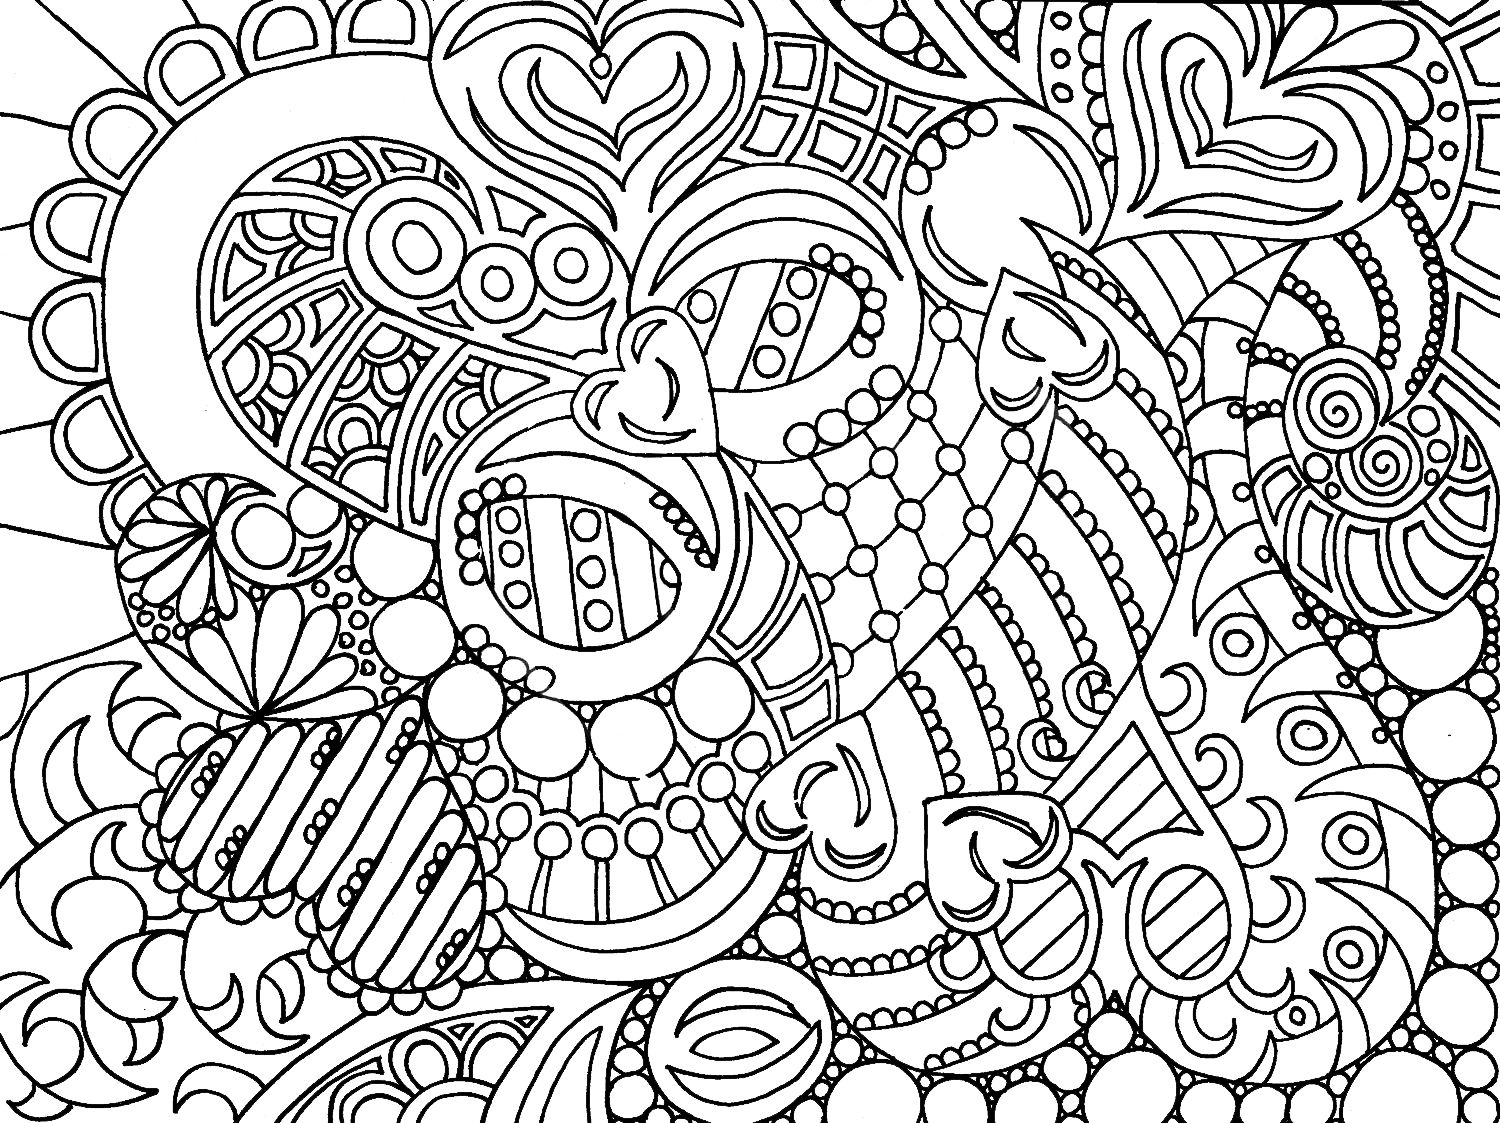 Free printable coloring pages for grown ups - Advanced Coloring Pages Adults Coloring Pages Pictures Imagixs